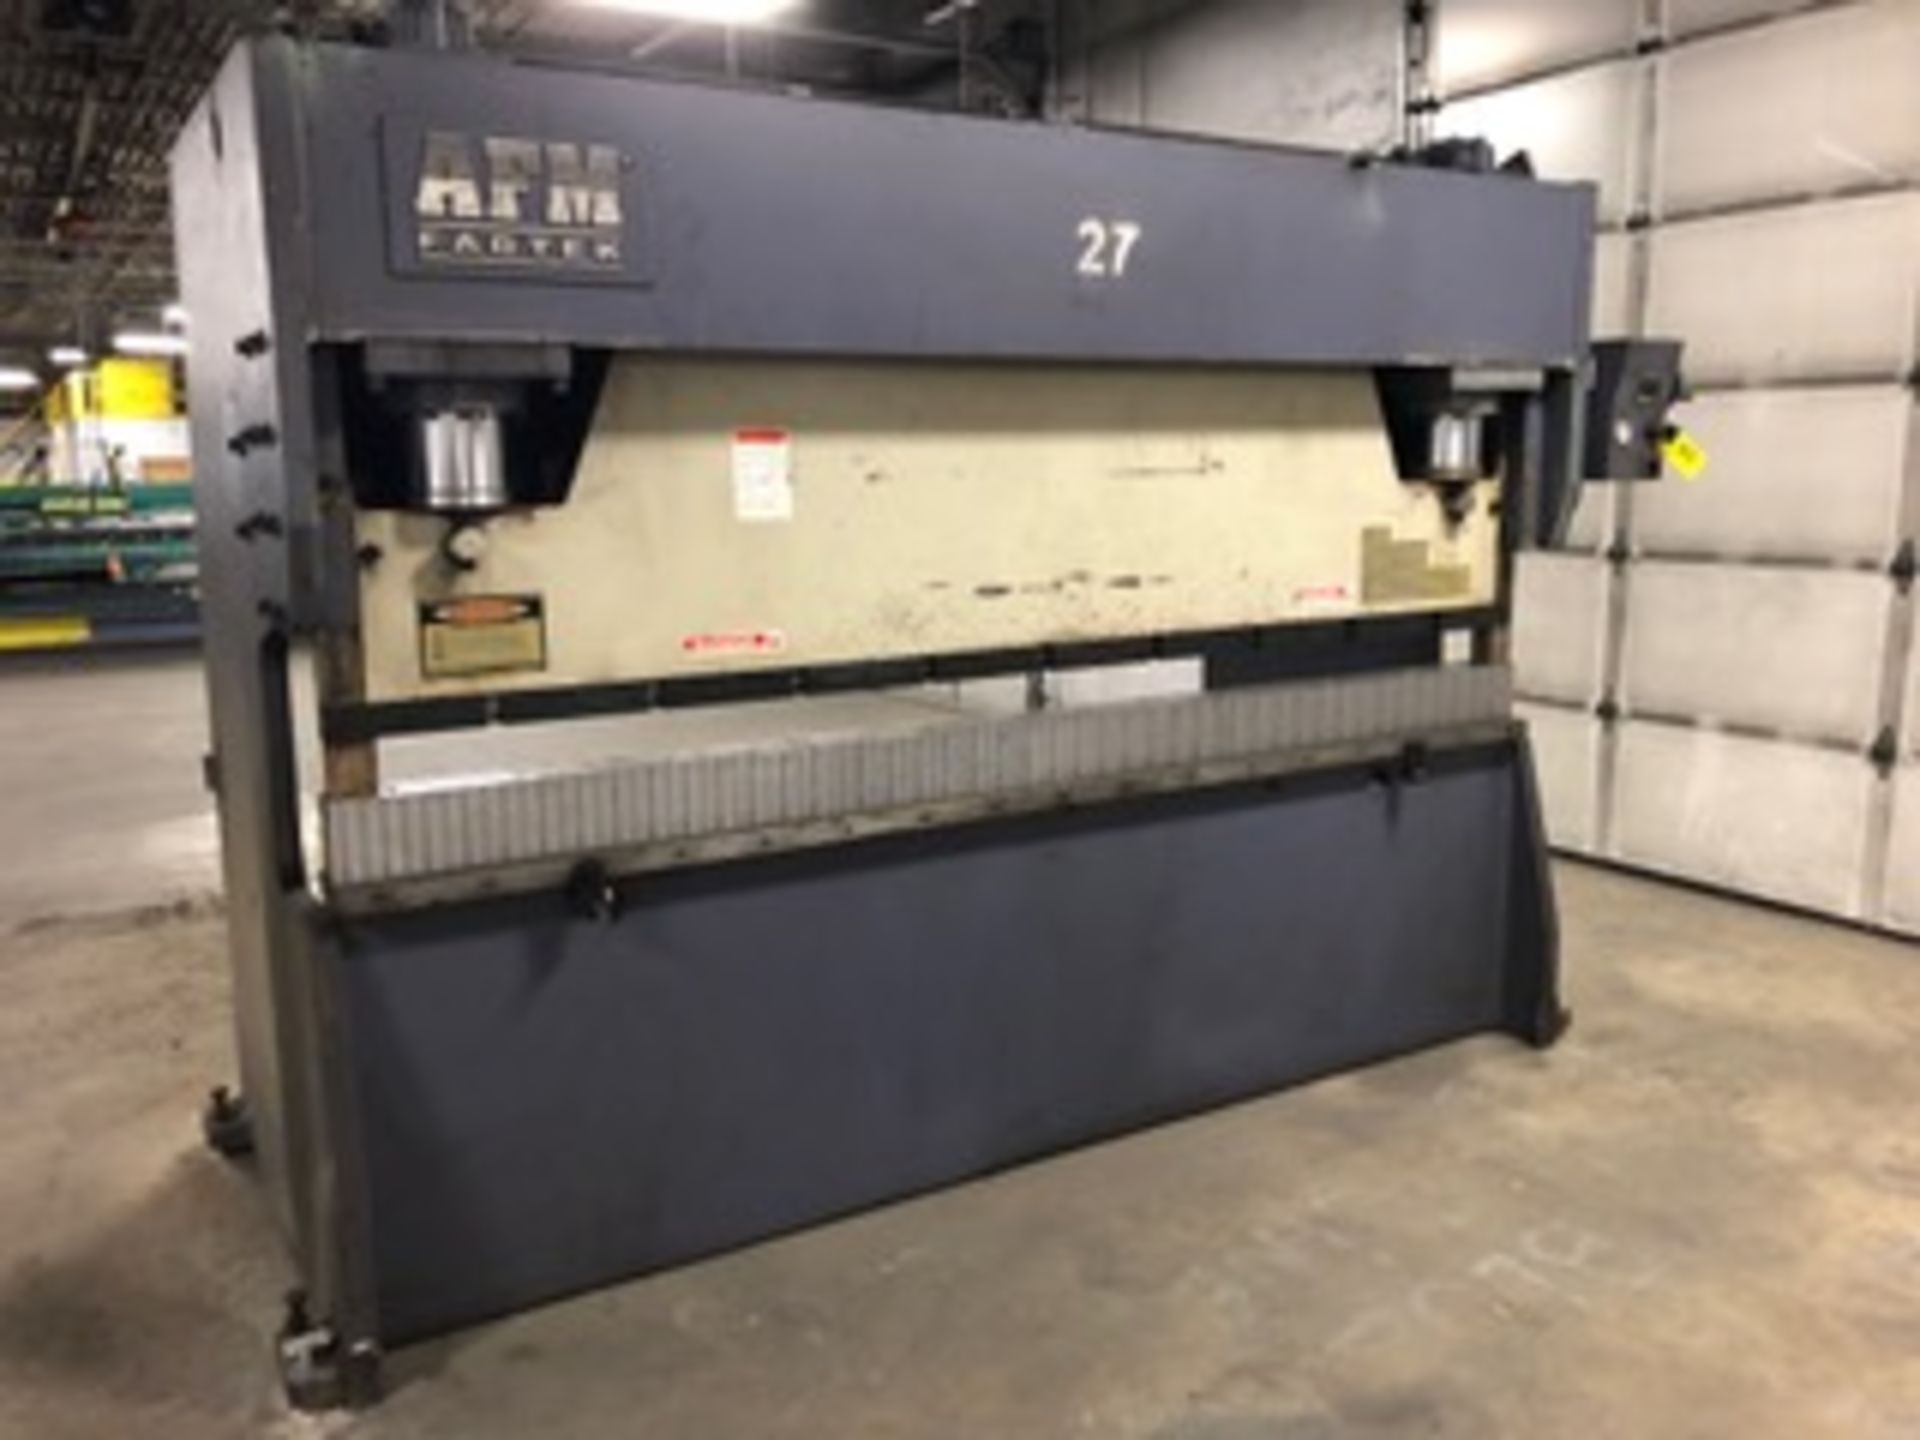 AFM Fabtek Model MPF31-165 Hydraulic Power Press Brake, Serial Number: CHPB9-90080T 165 Tons -